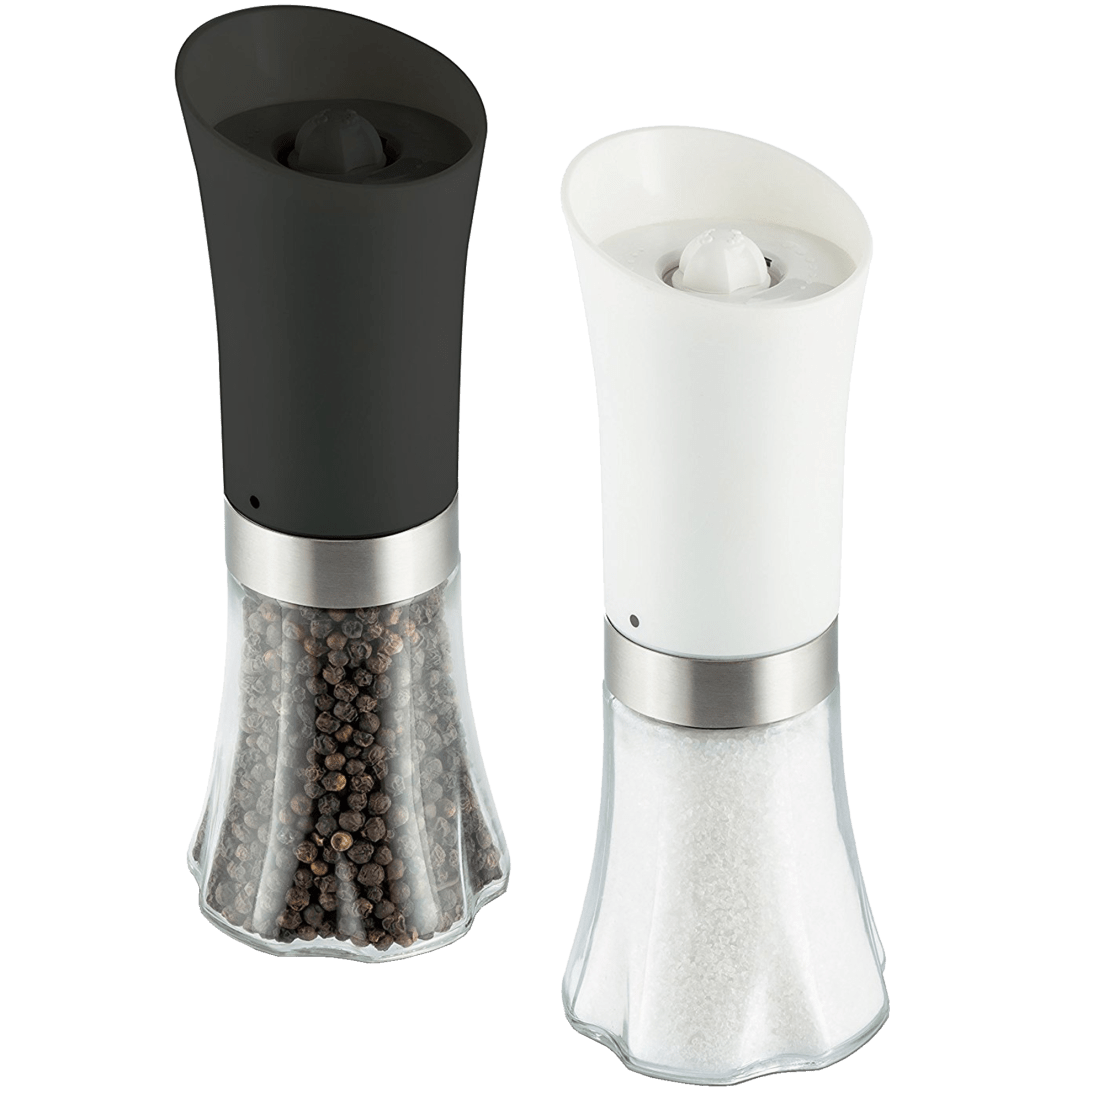 Deluxe Electric Salt Pepper Mill Set By Modernhome